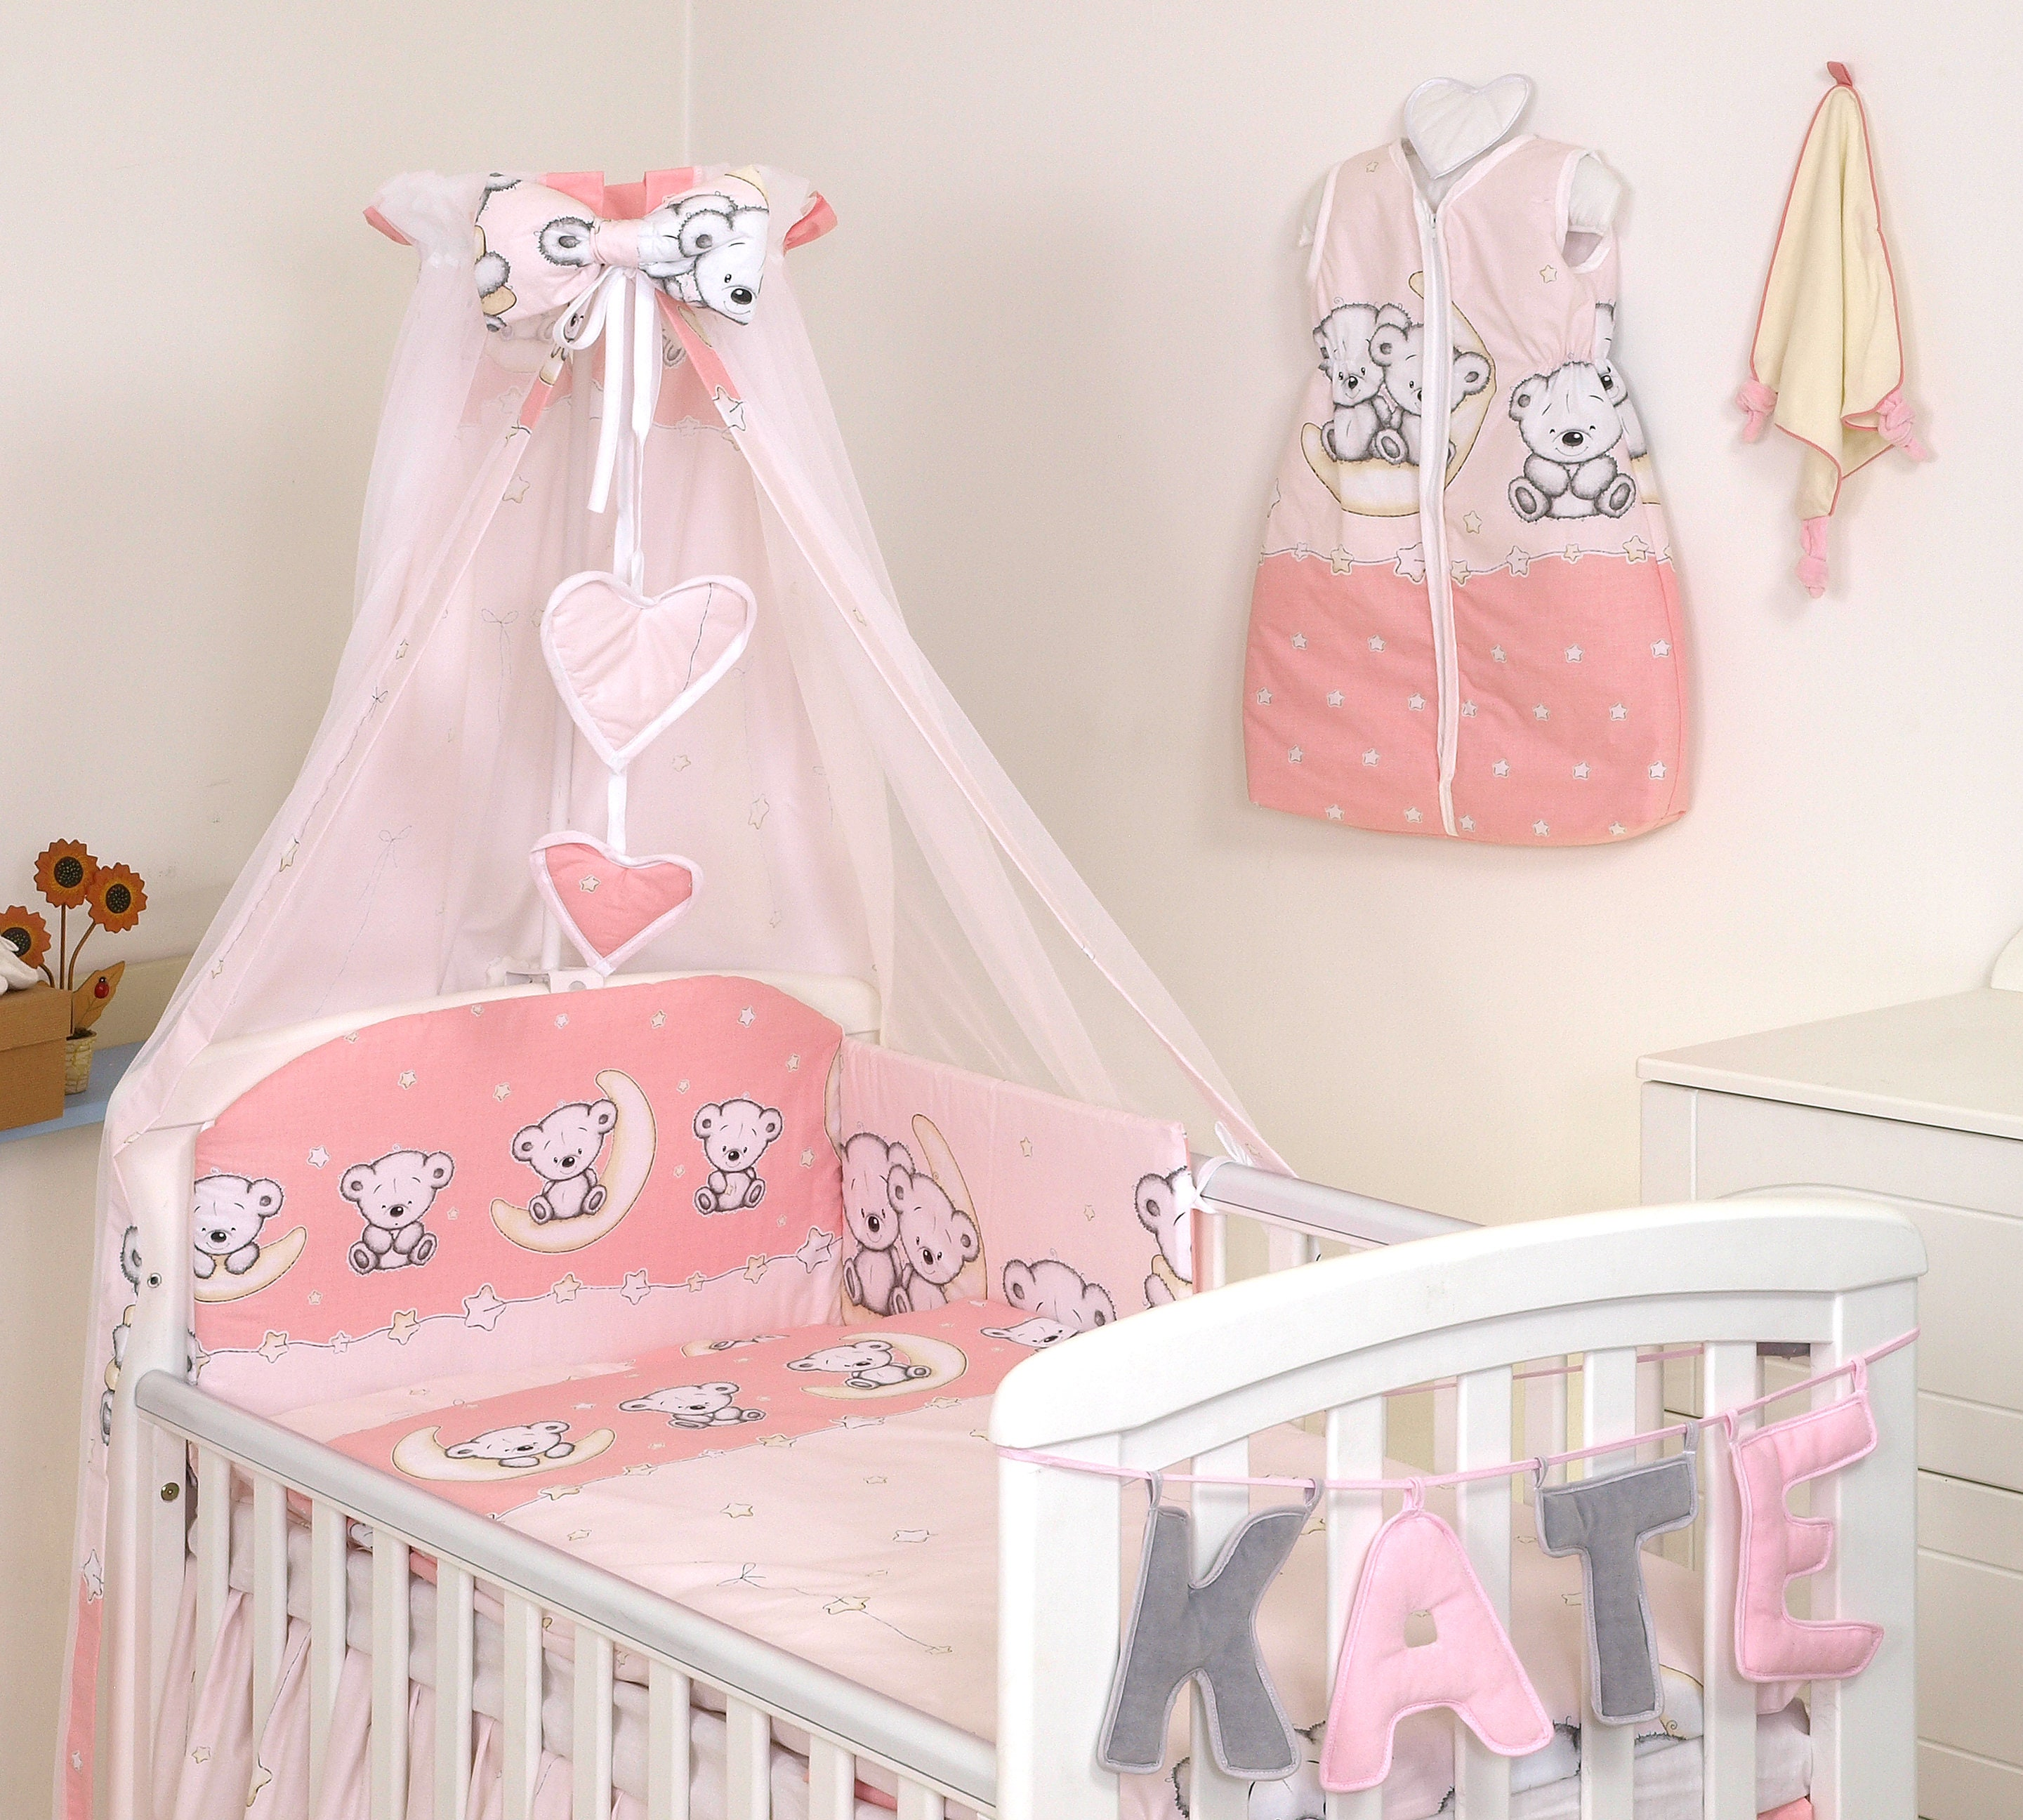 COVERs BUMPER ELEPHANT GREY-YELLOW BABY BEDDING SET COT COT BED CANOPY+MORE